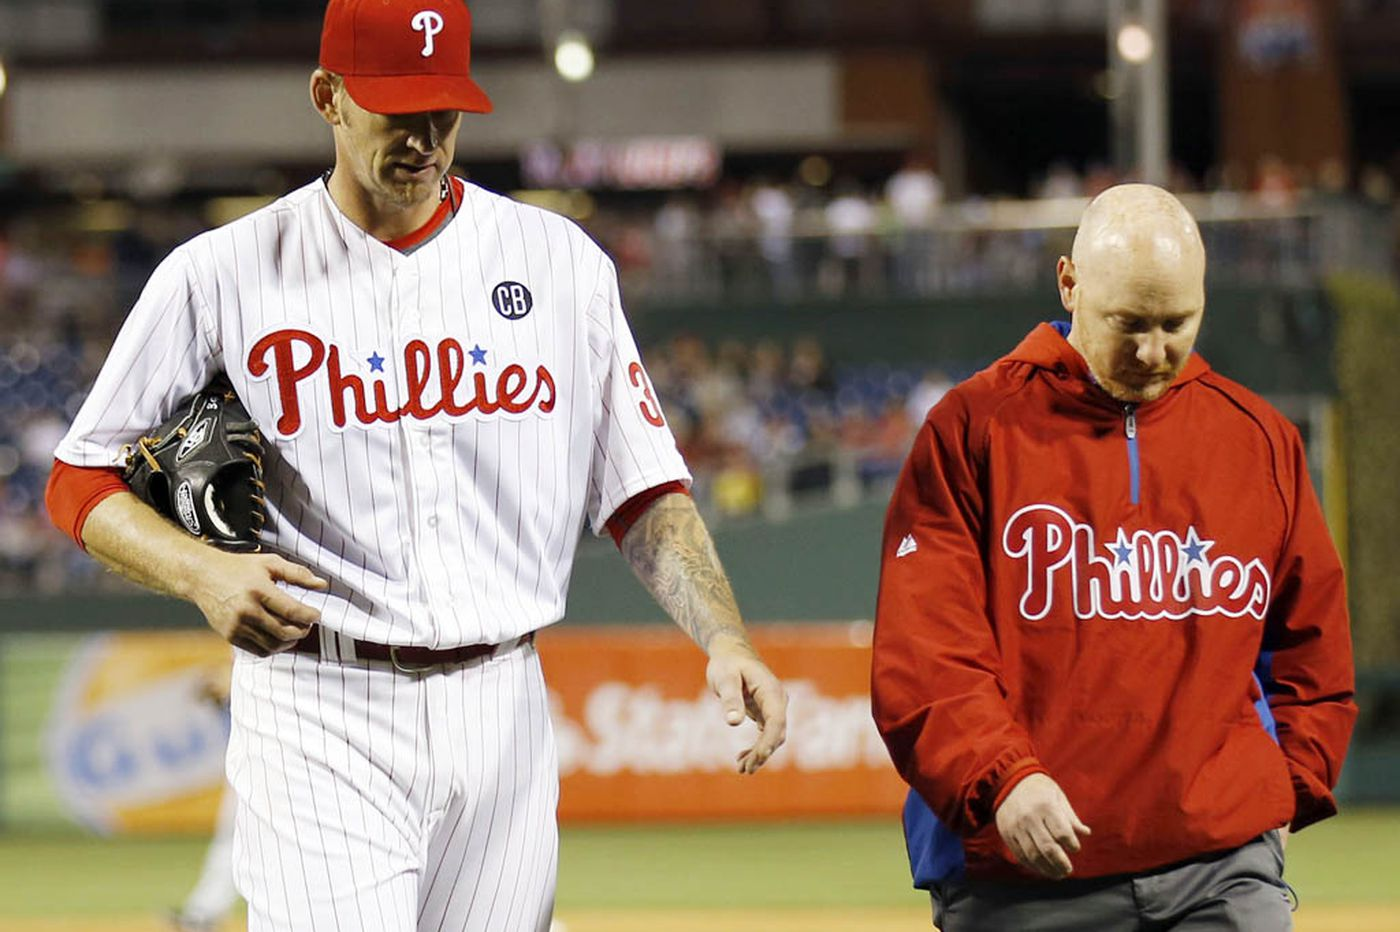 Phillies Notes: Burnett plans to keep pitching with hernia